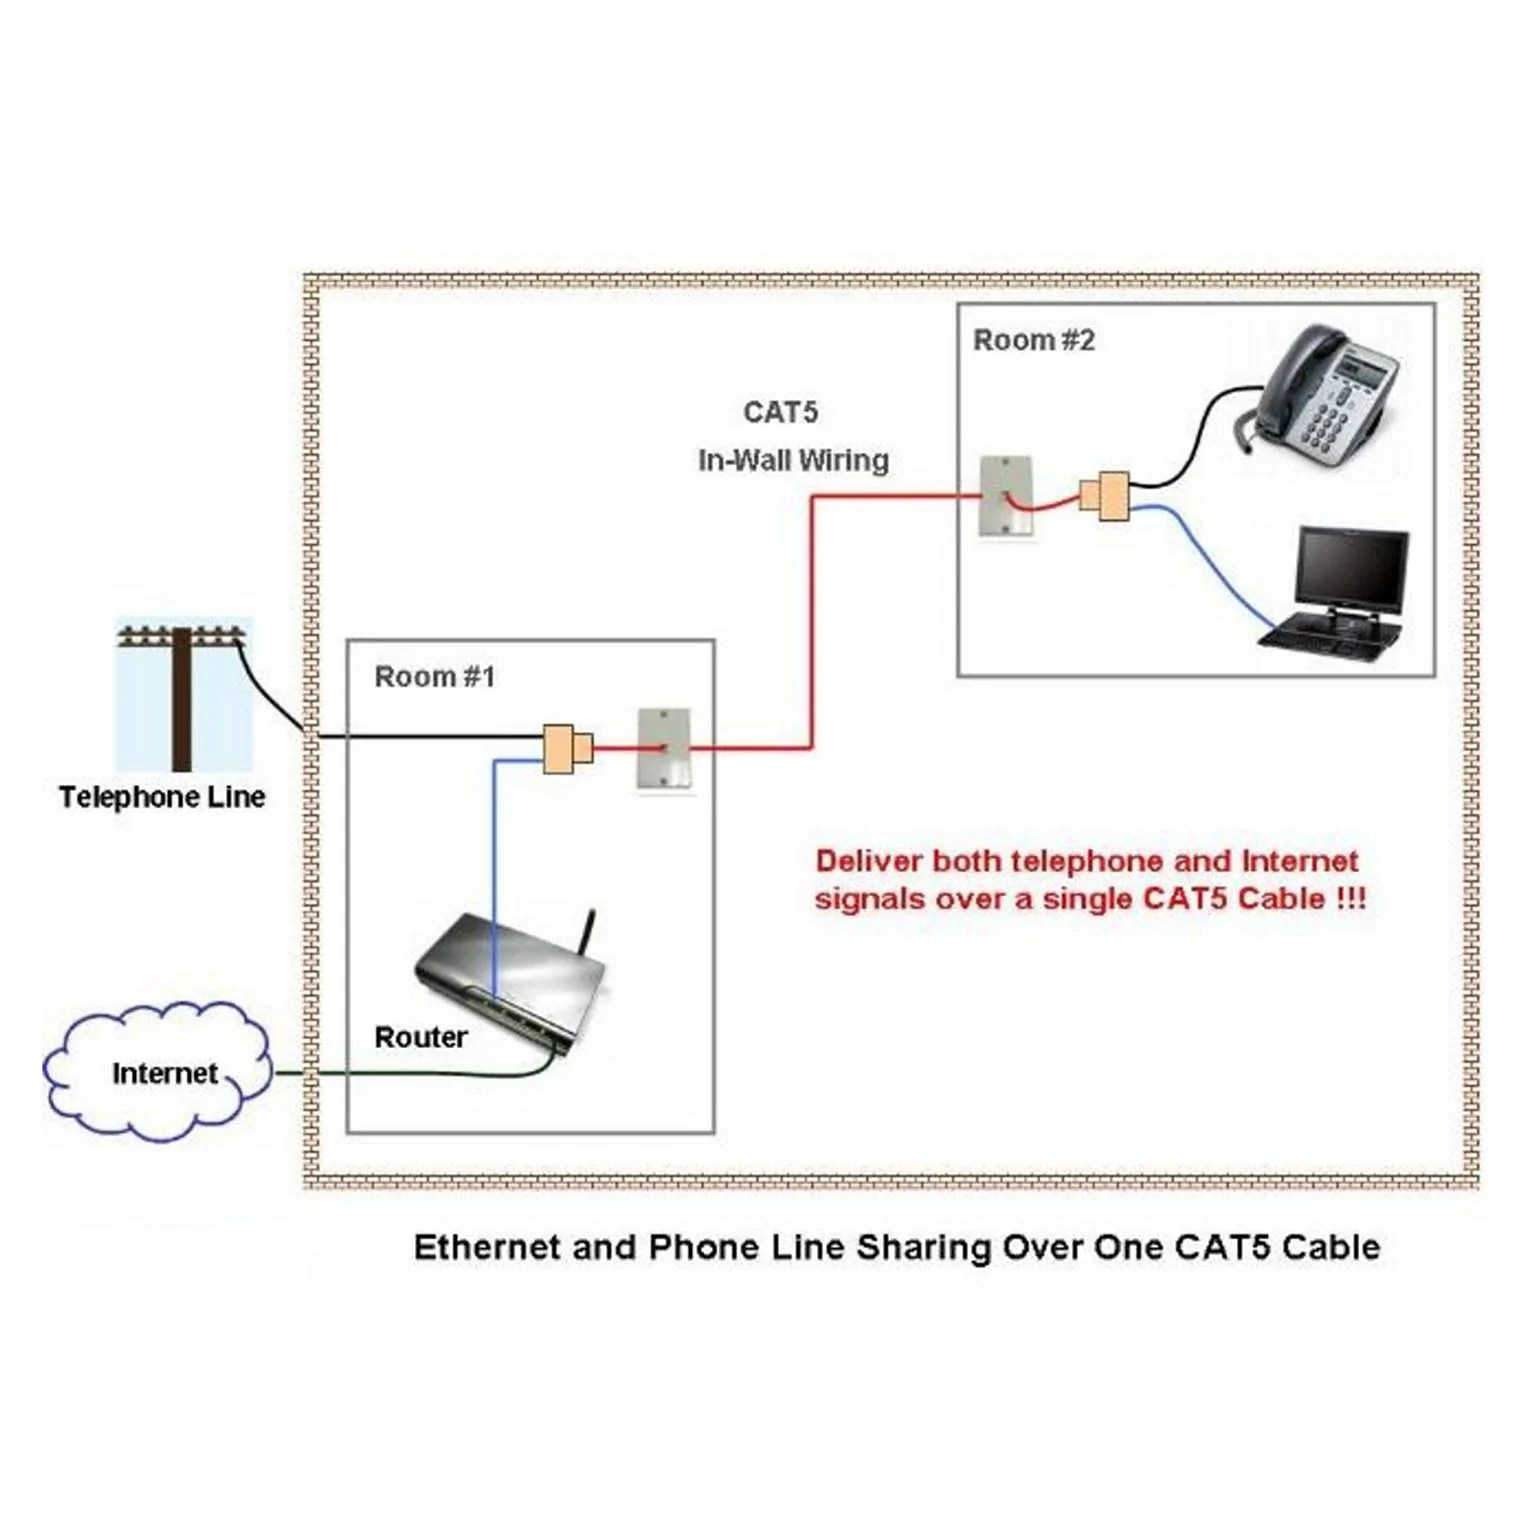 hight resolution of ethernet phone wiring diagram wiring diagram ameethernet phone wiring diagram wiring diagram fascinating ethernet phone wiring